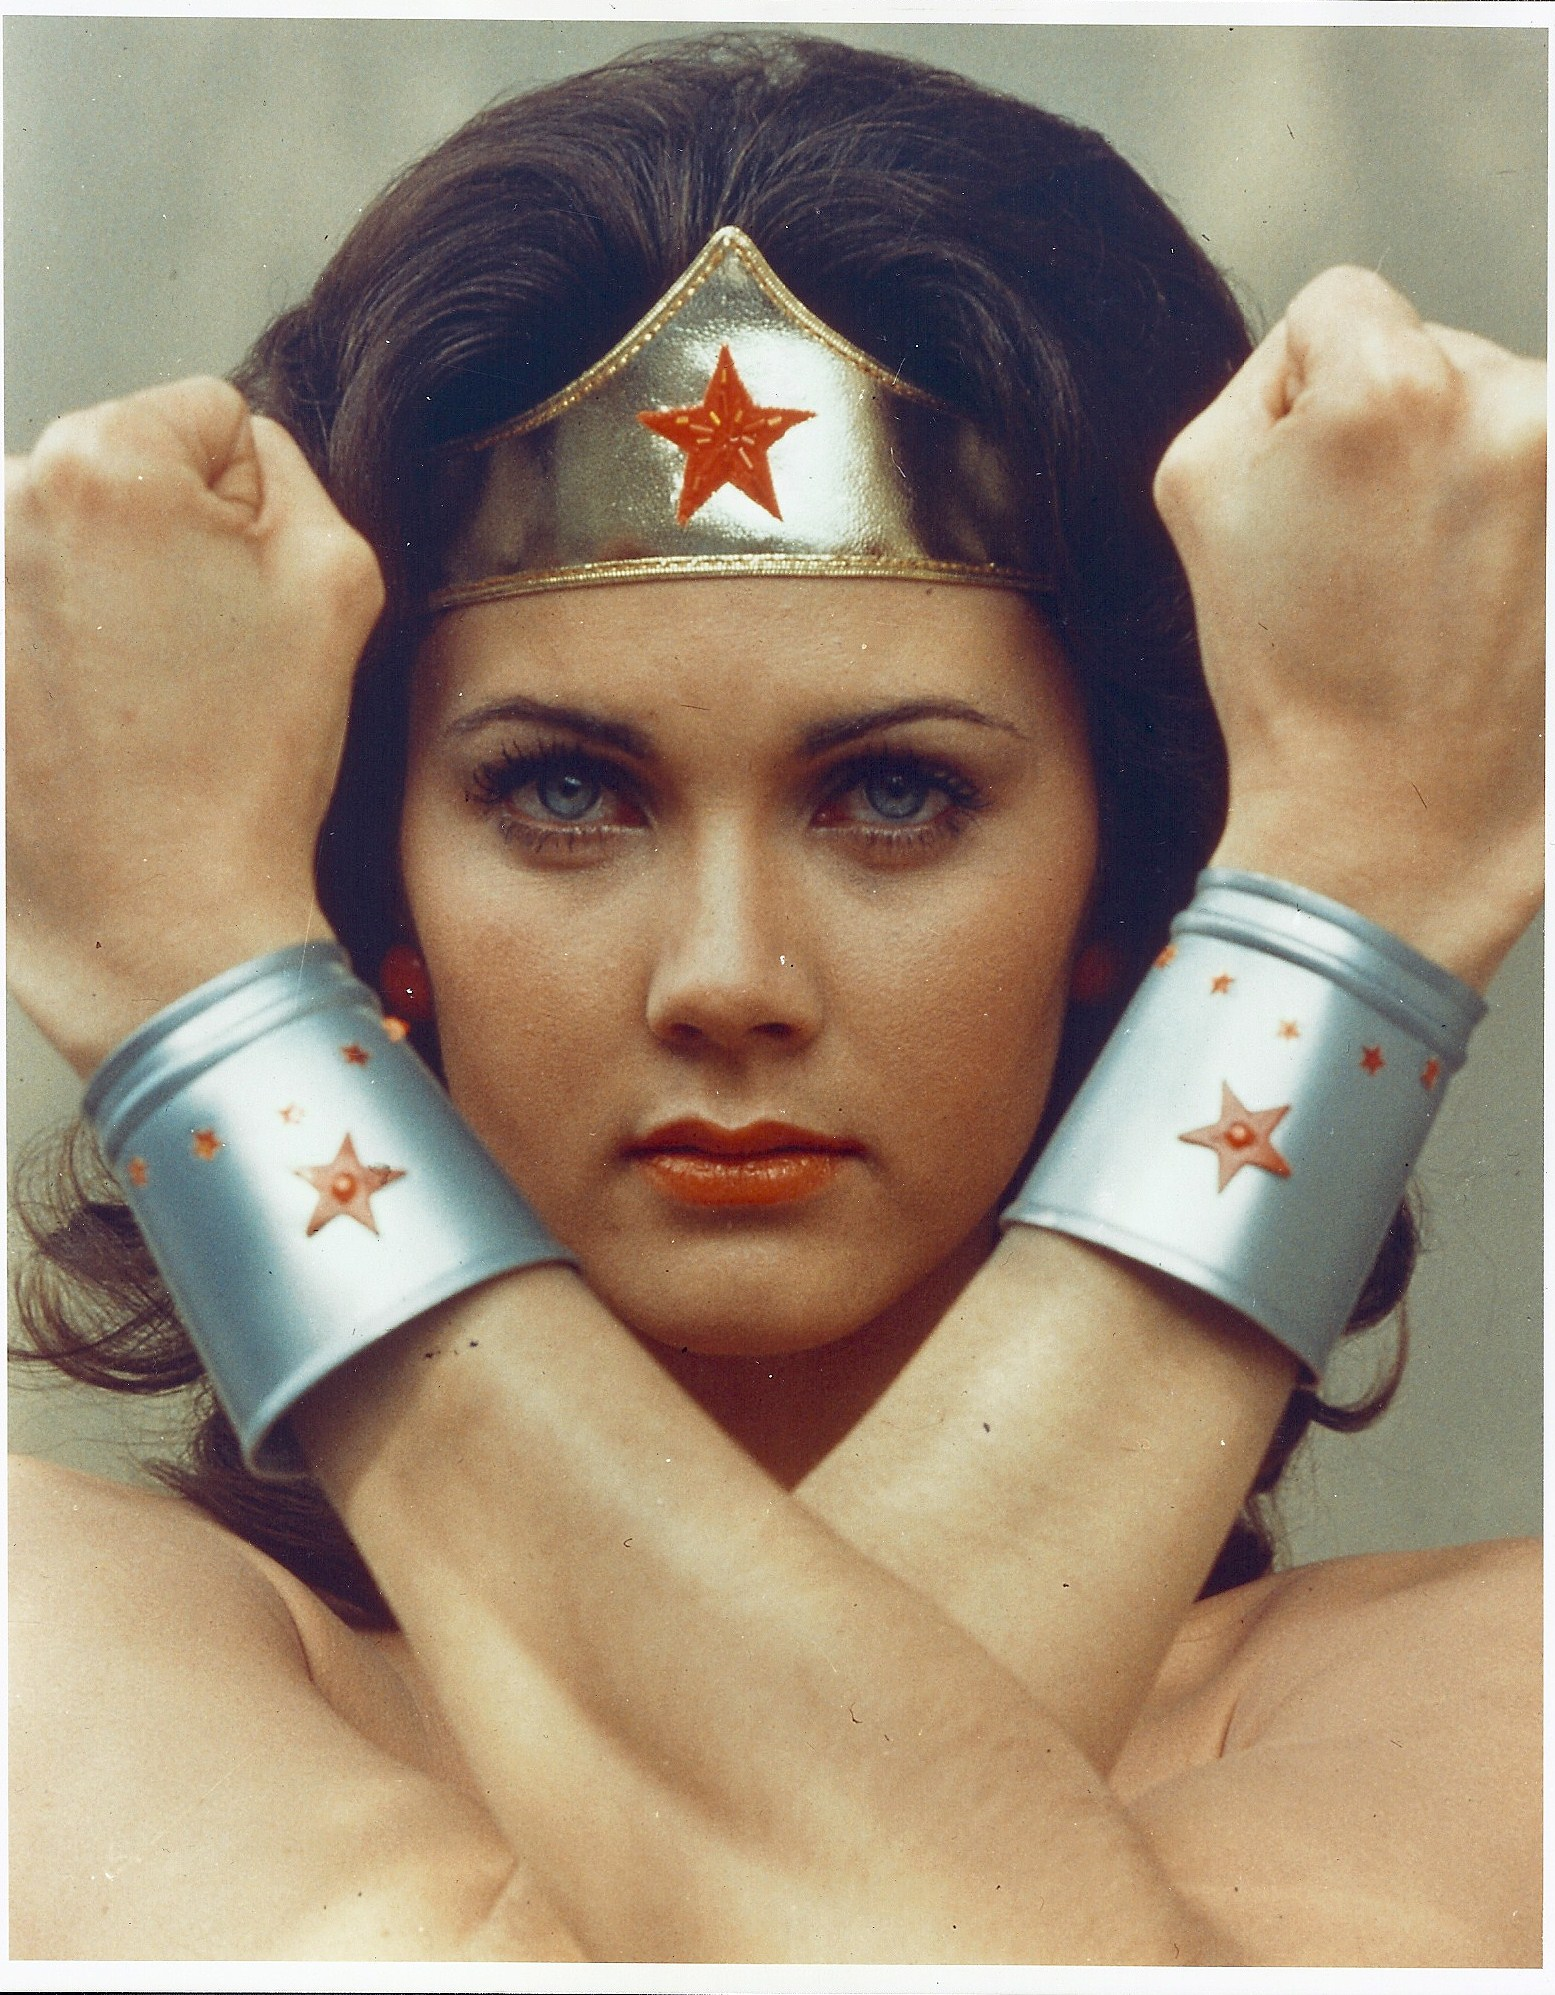 WONDER WOMAN 1975 promo - Wonder Woman Photo (23490257) - Fanpop